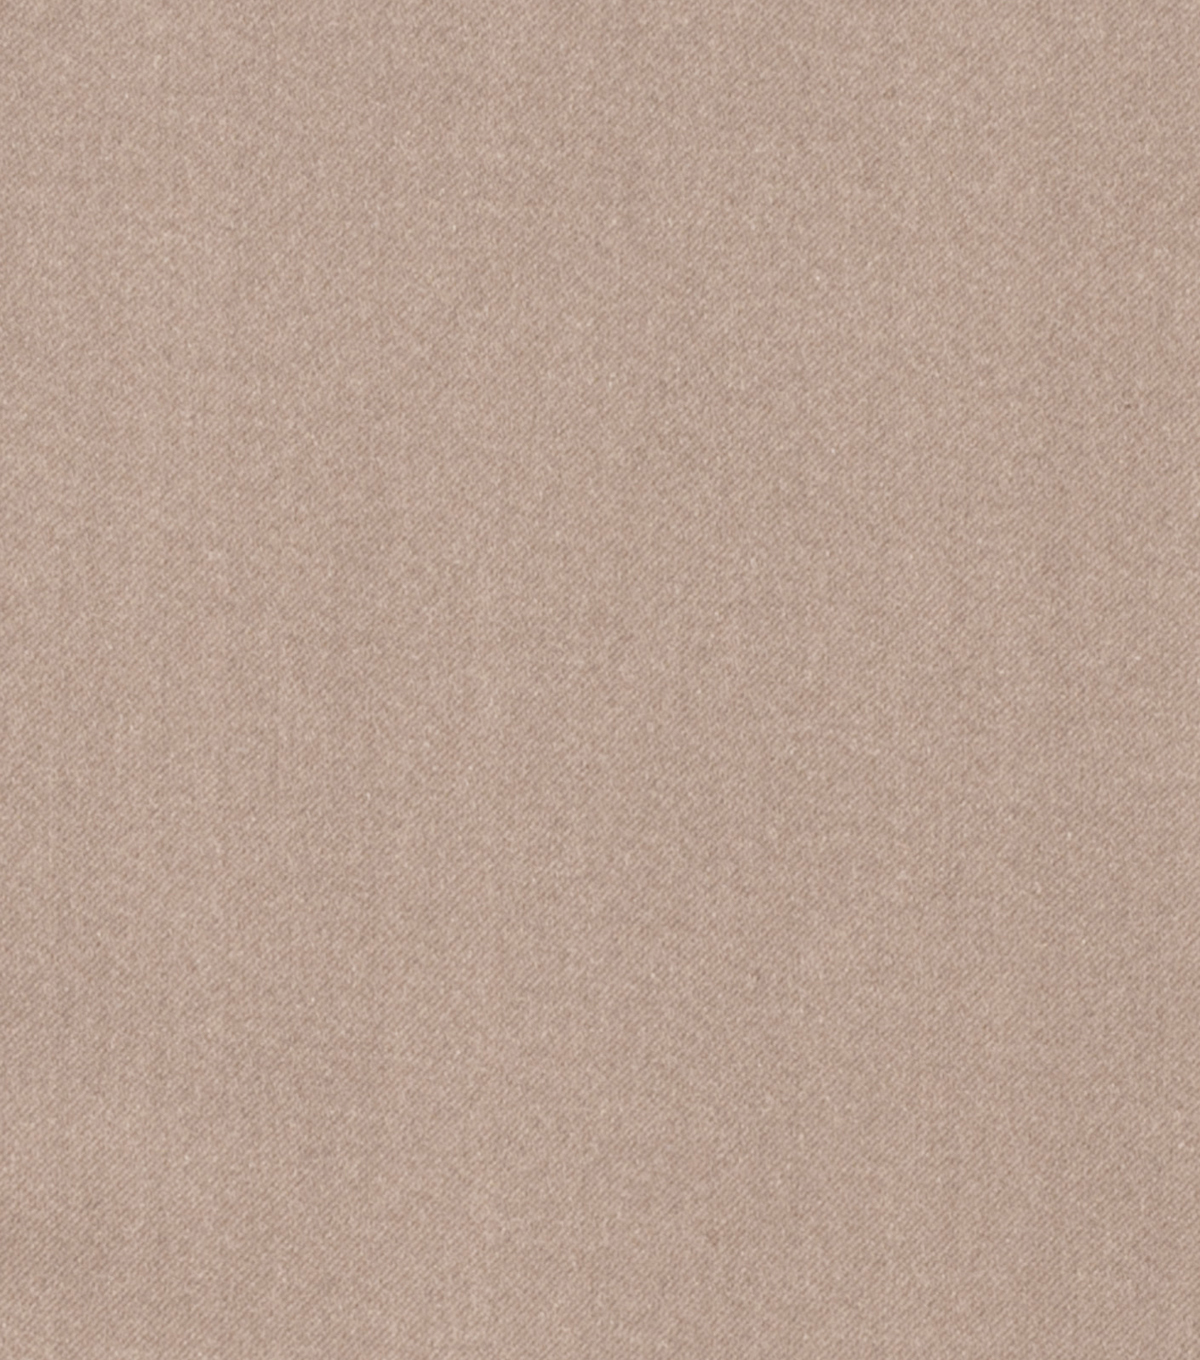 Home Decor 8\u0022x8\u0022 Fabric Swatch-Signature Series Couture Satin Fossil